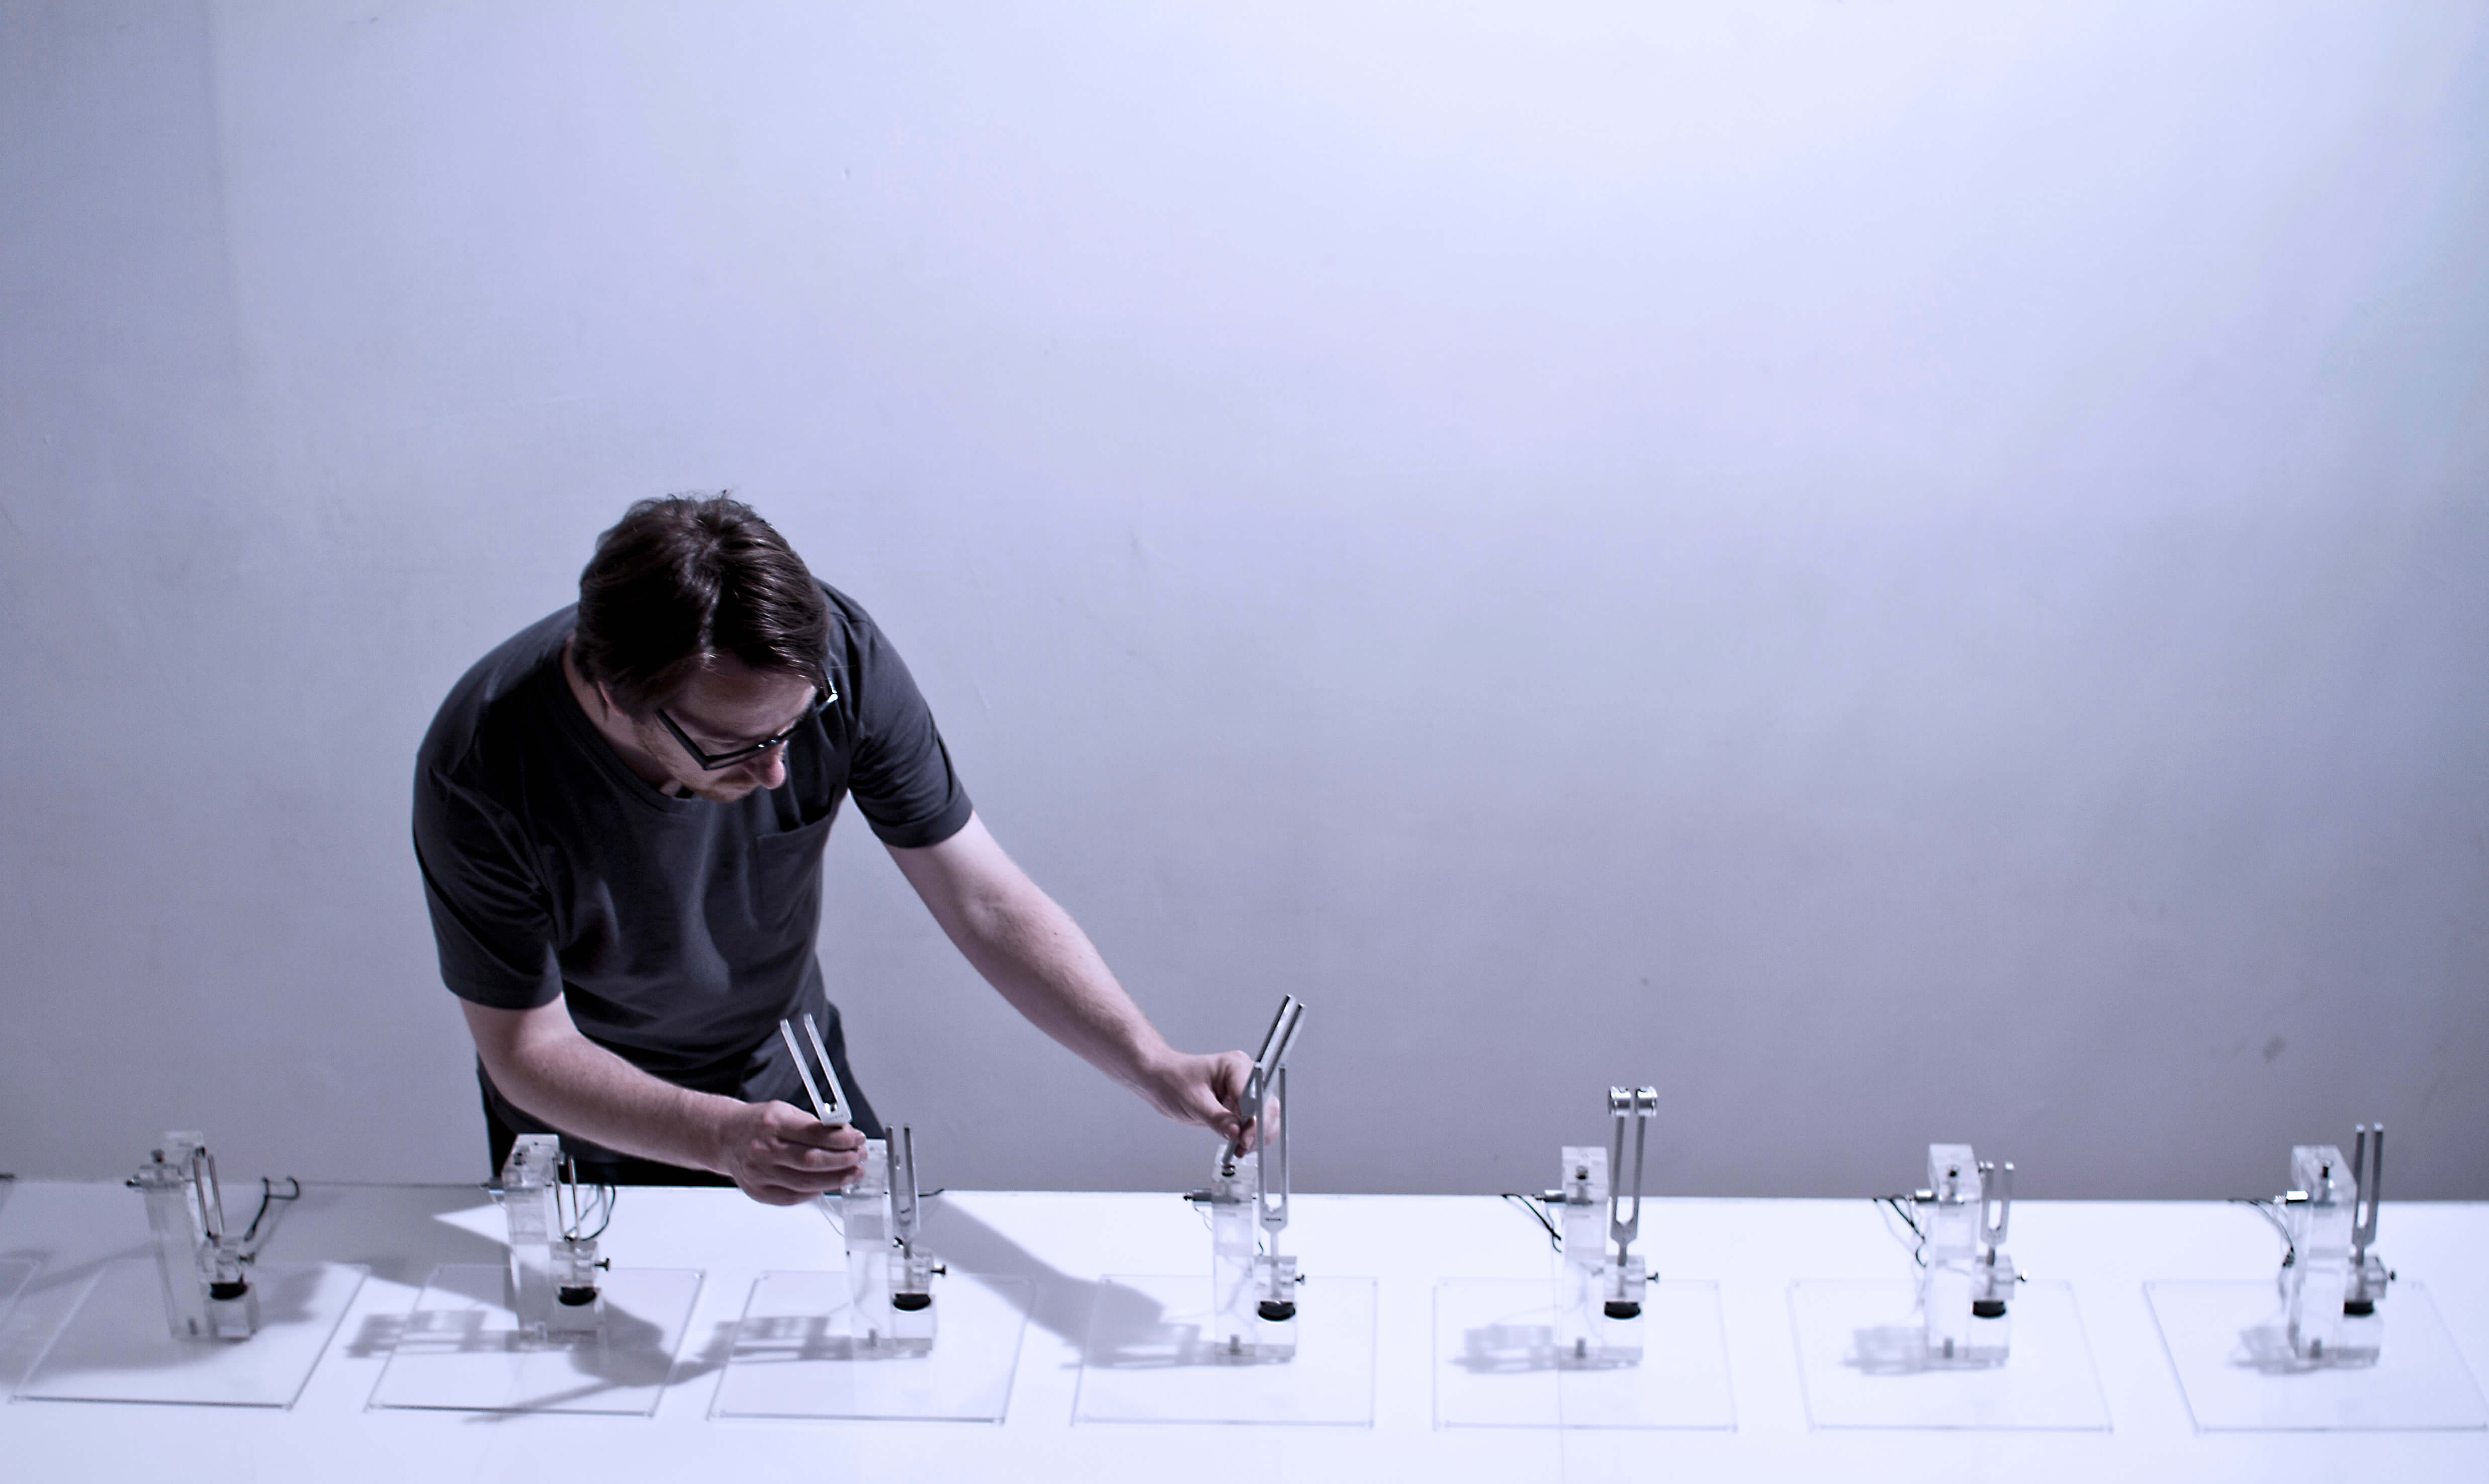 Nicolas Bernier playing with several tuning forks on a white table.